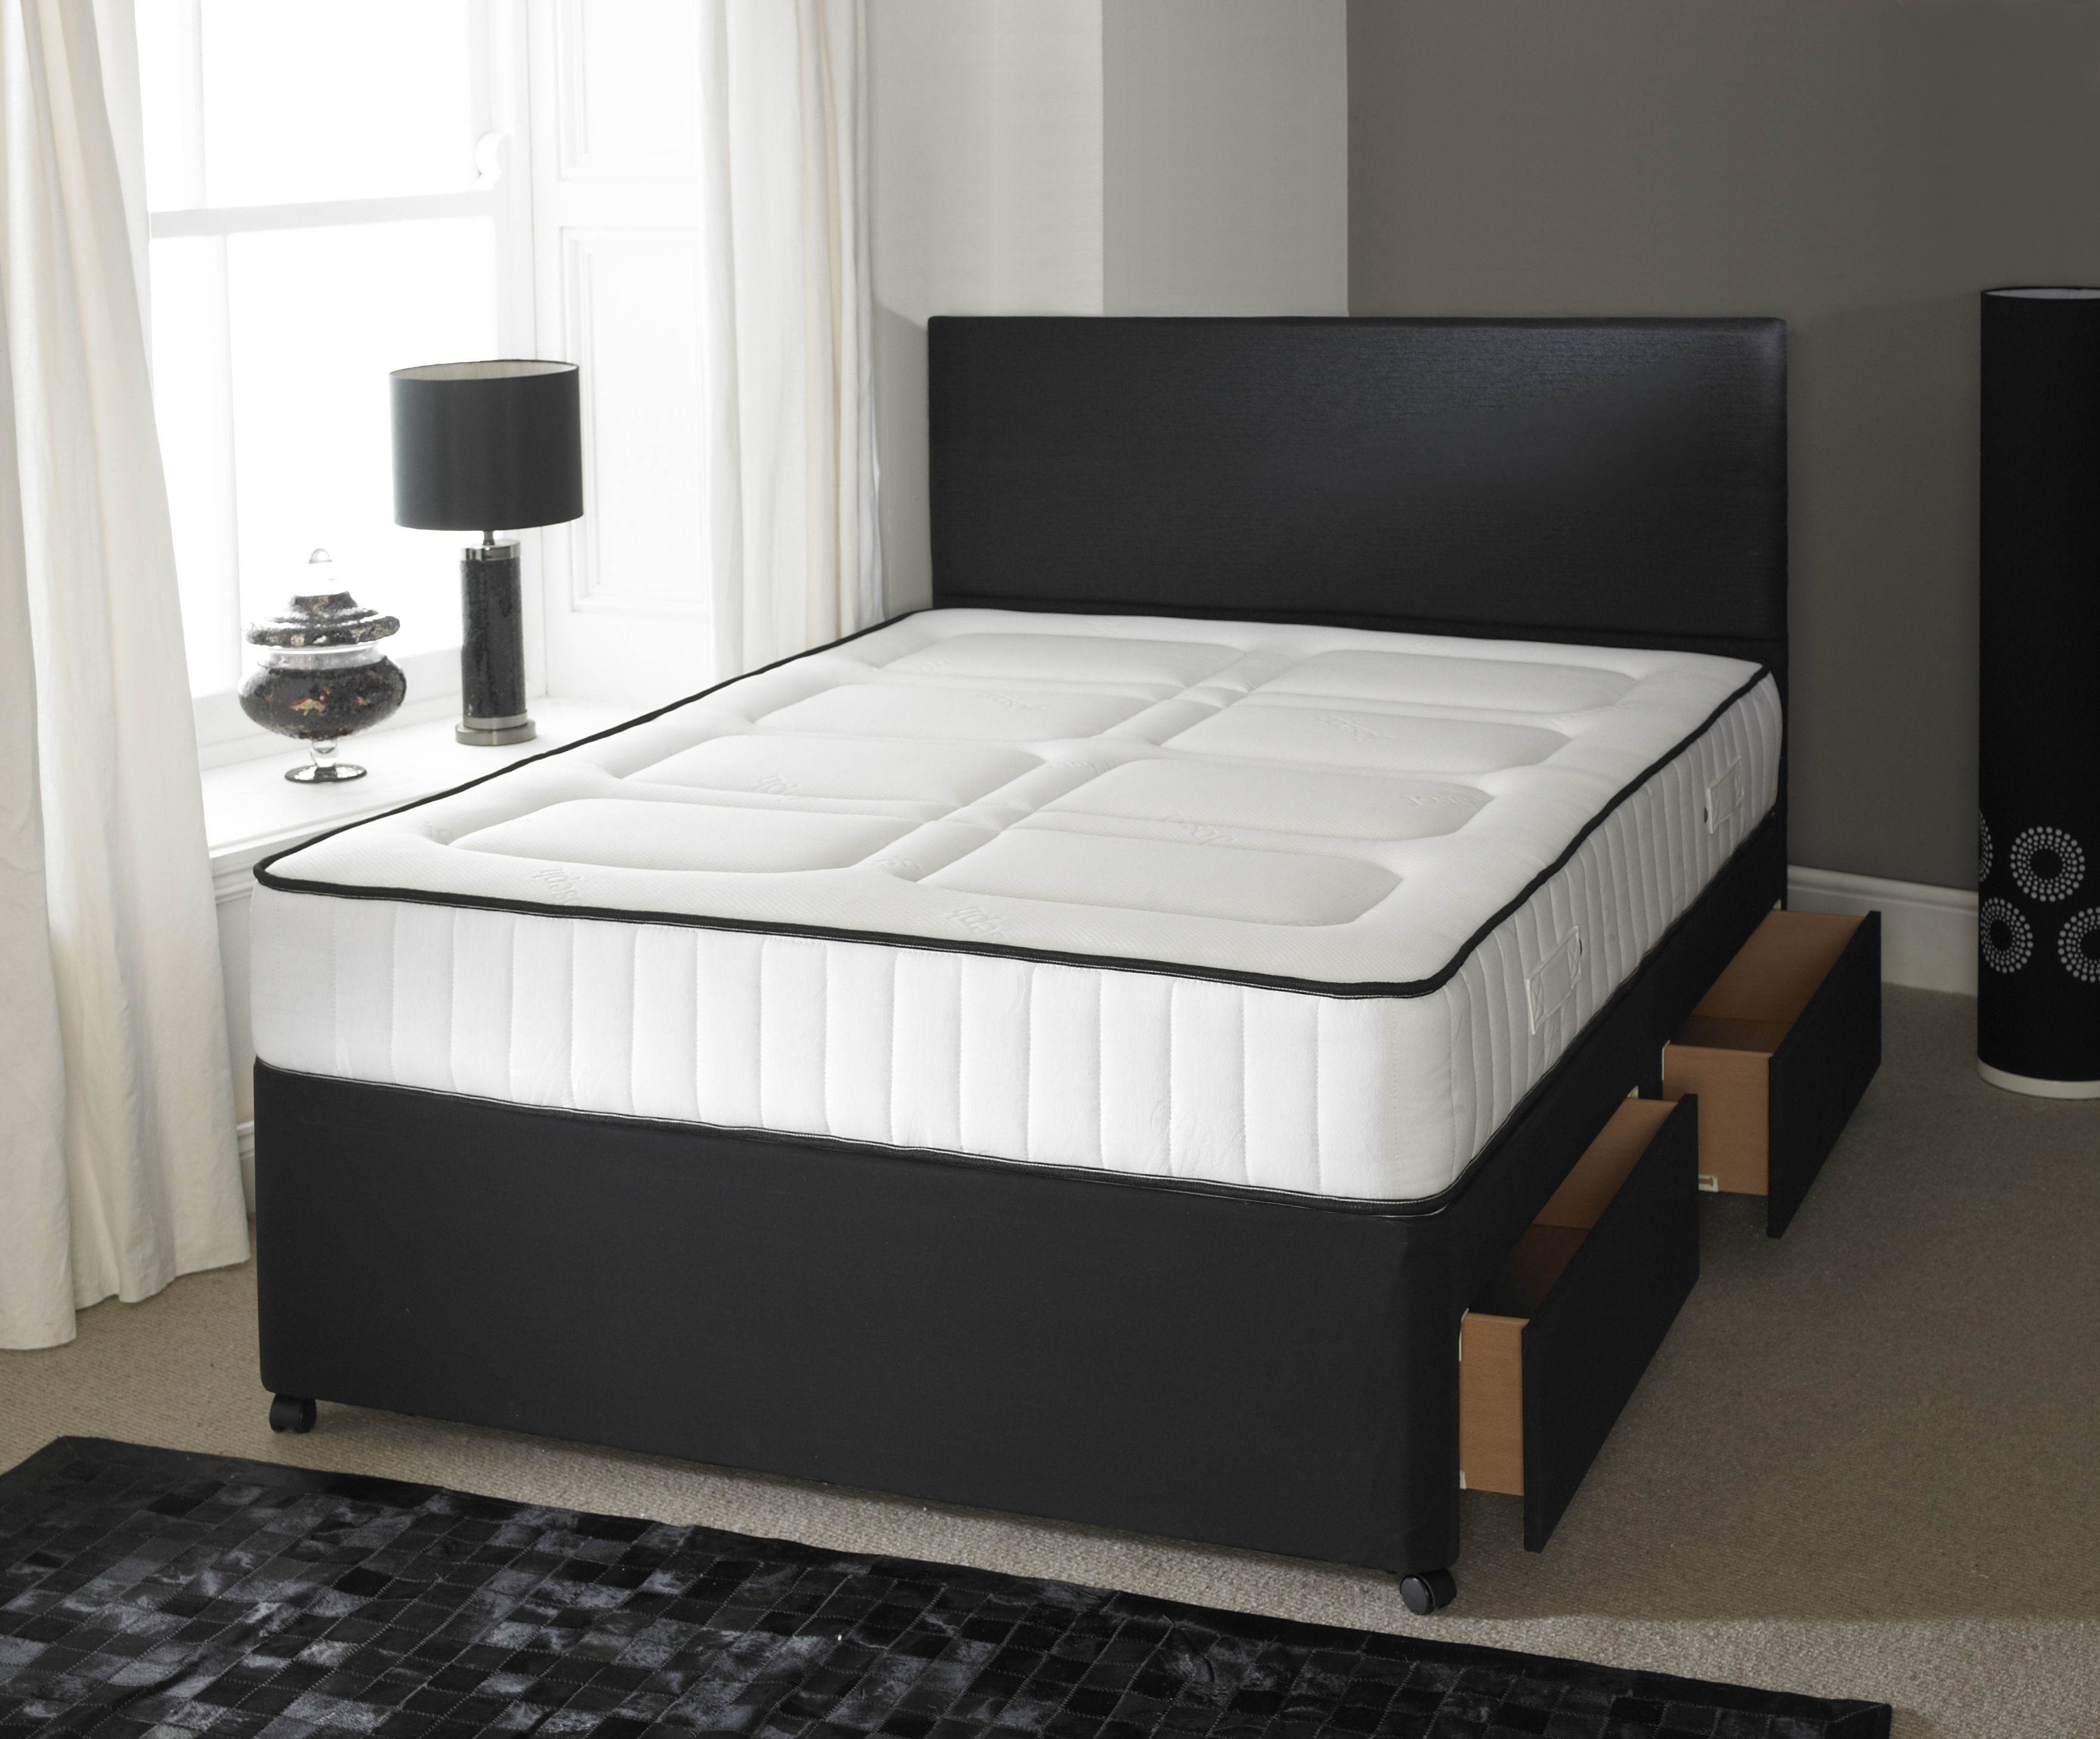 Single double super king size orthopaedic divan bed with for Super king size divan